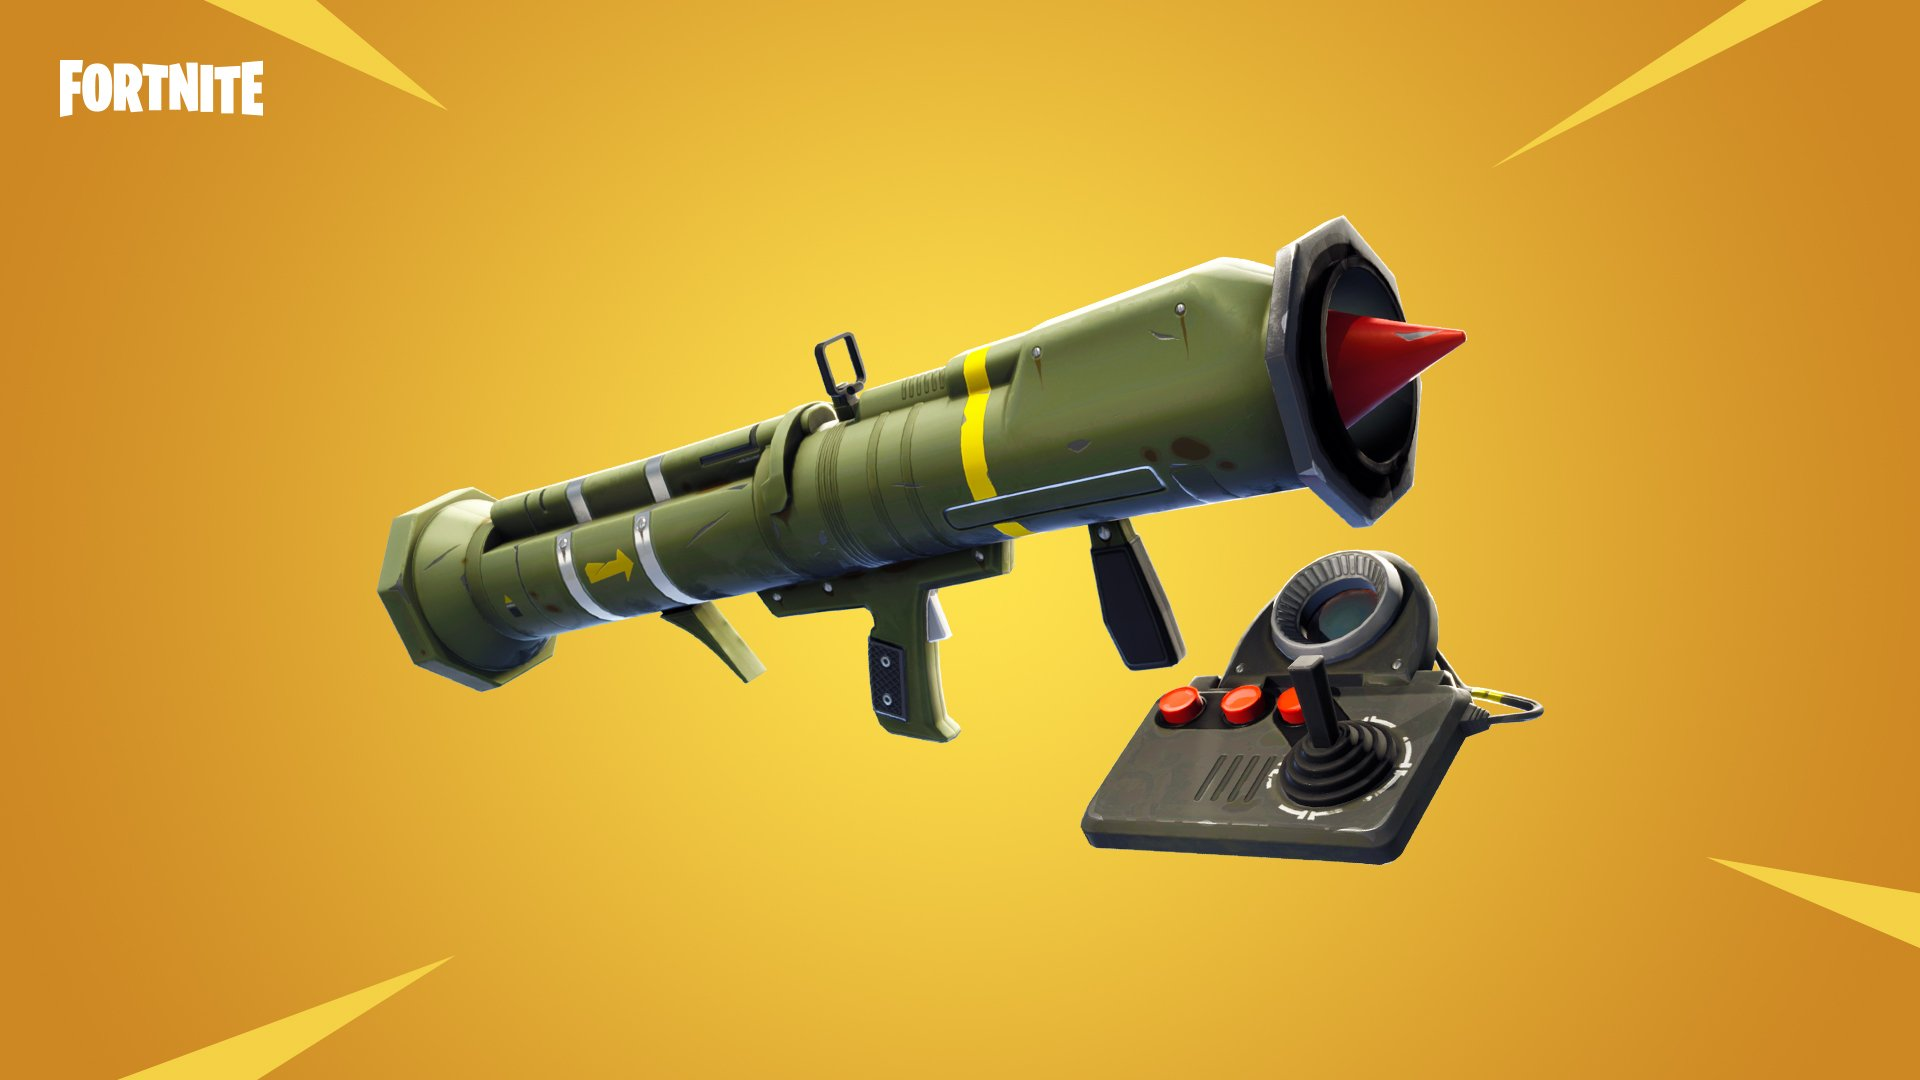 The Fortnite Guided Missile Returns with Patch 5.10